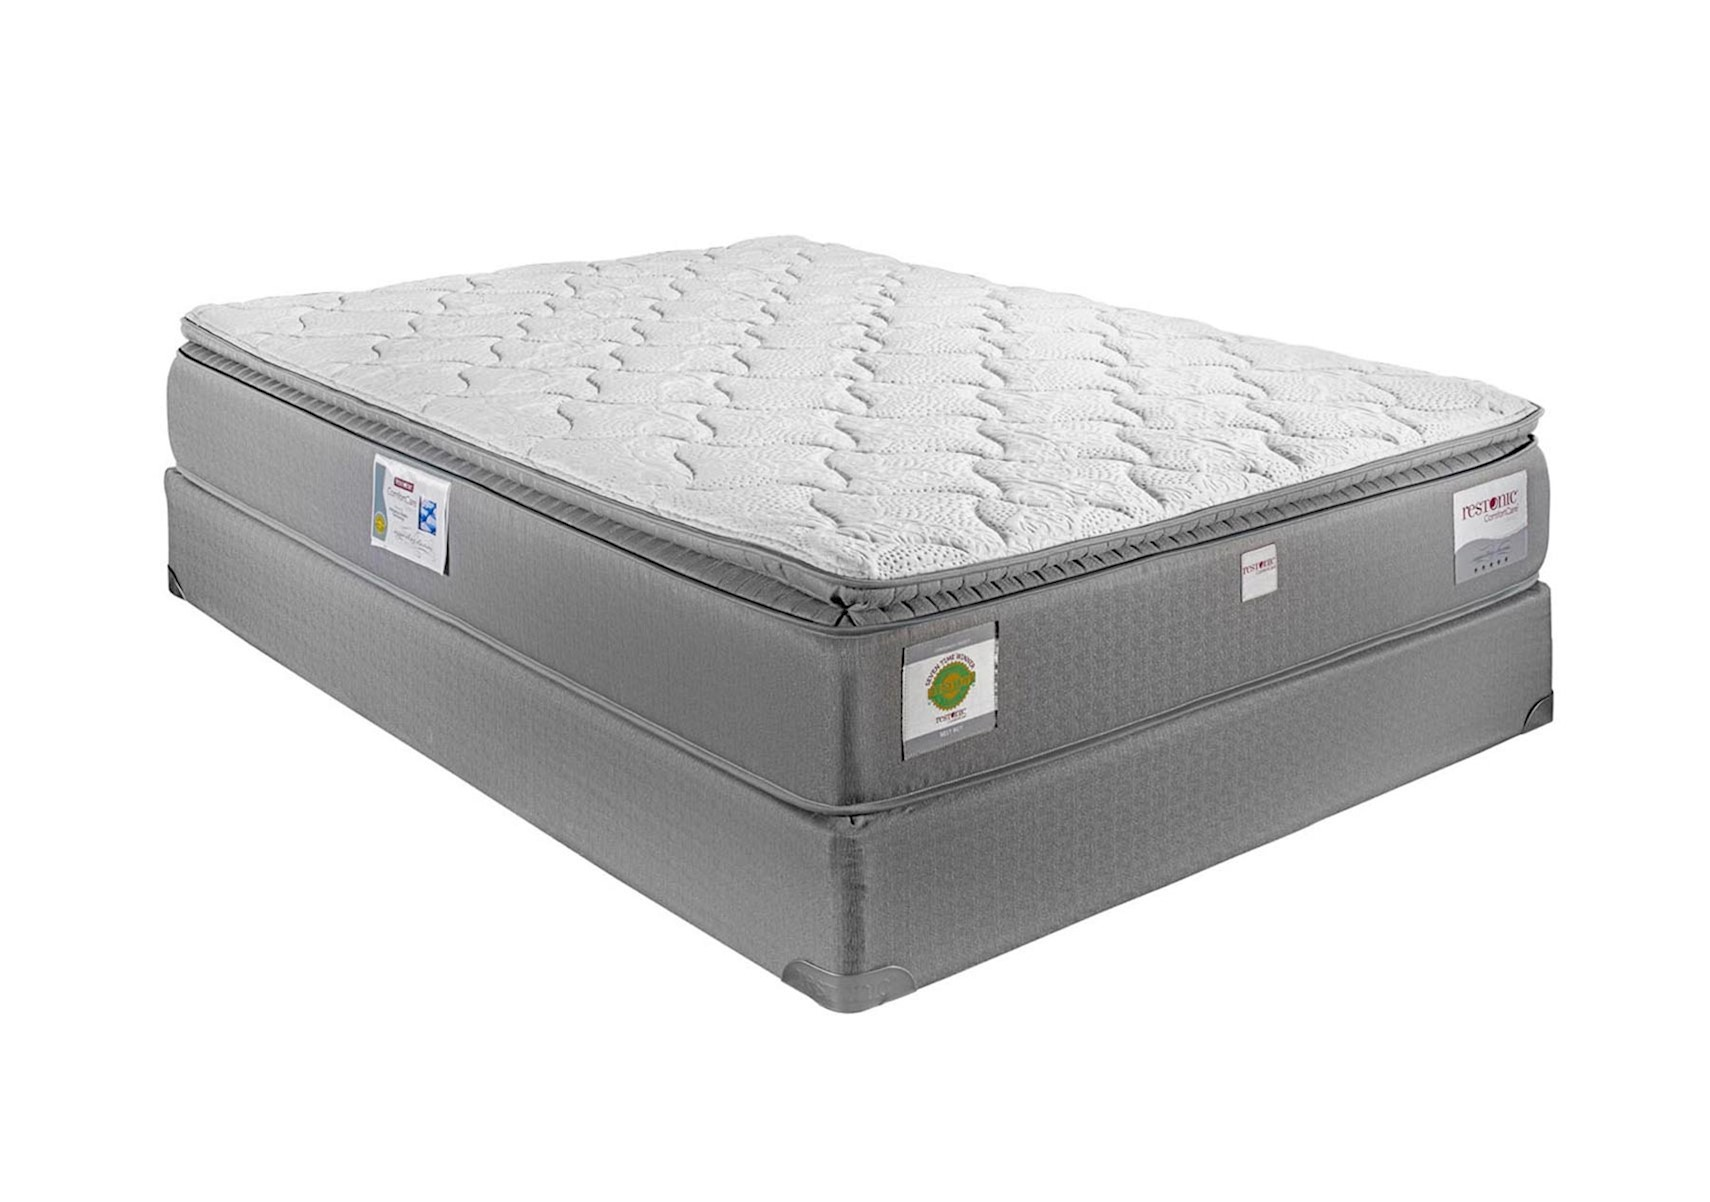 pillowtop stearns foster meadows english cal mattresses img top california set luxury plush euro mattress and pillow below wholesale king box